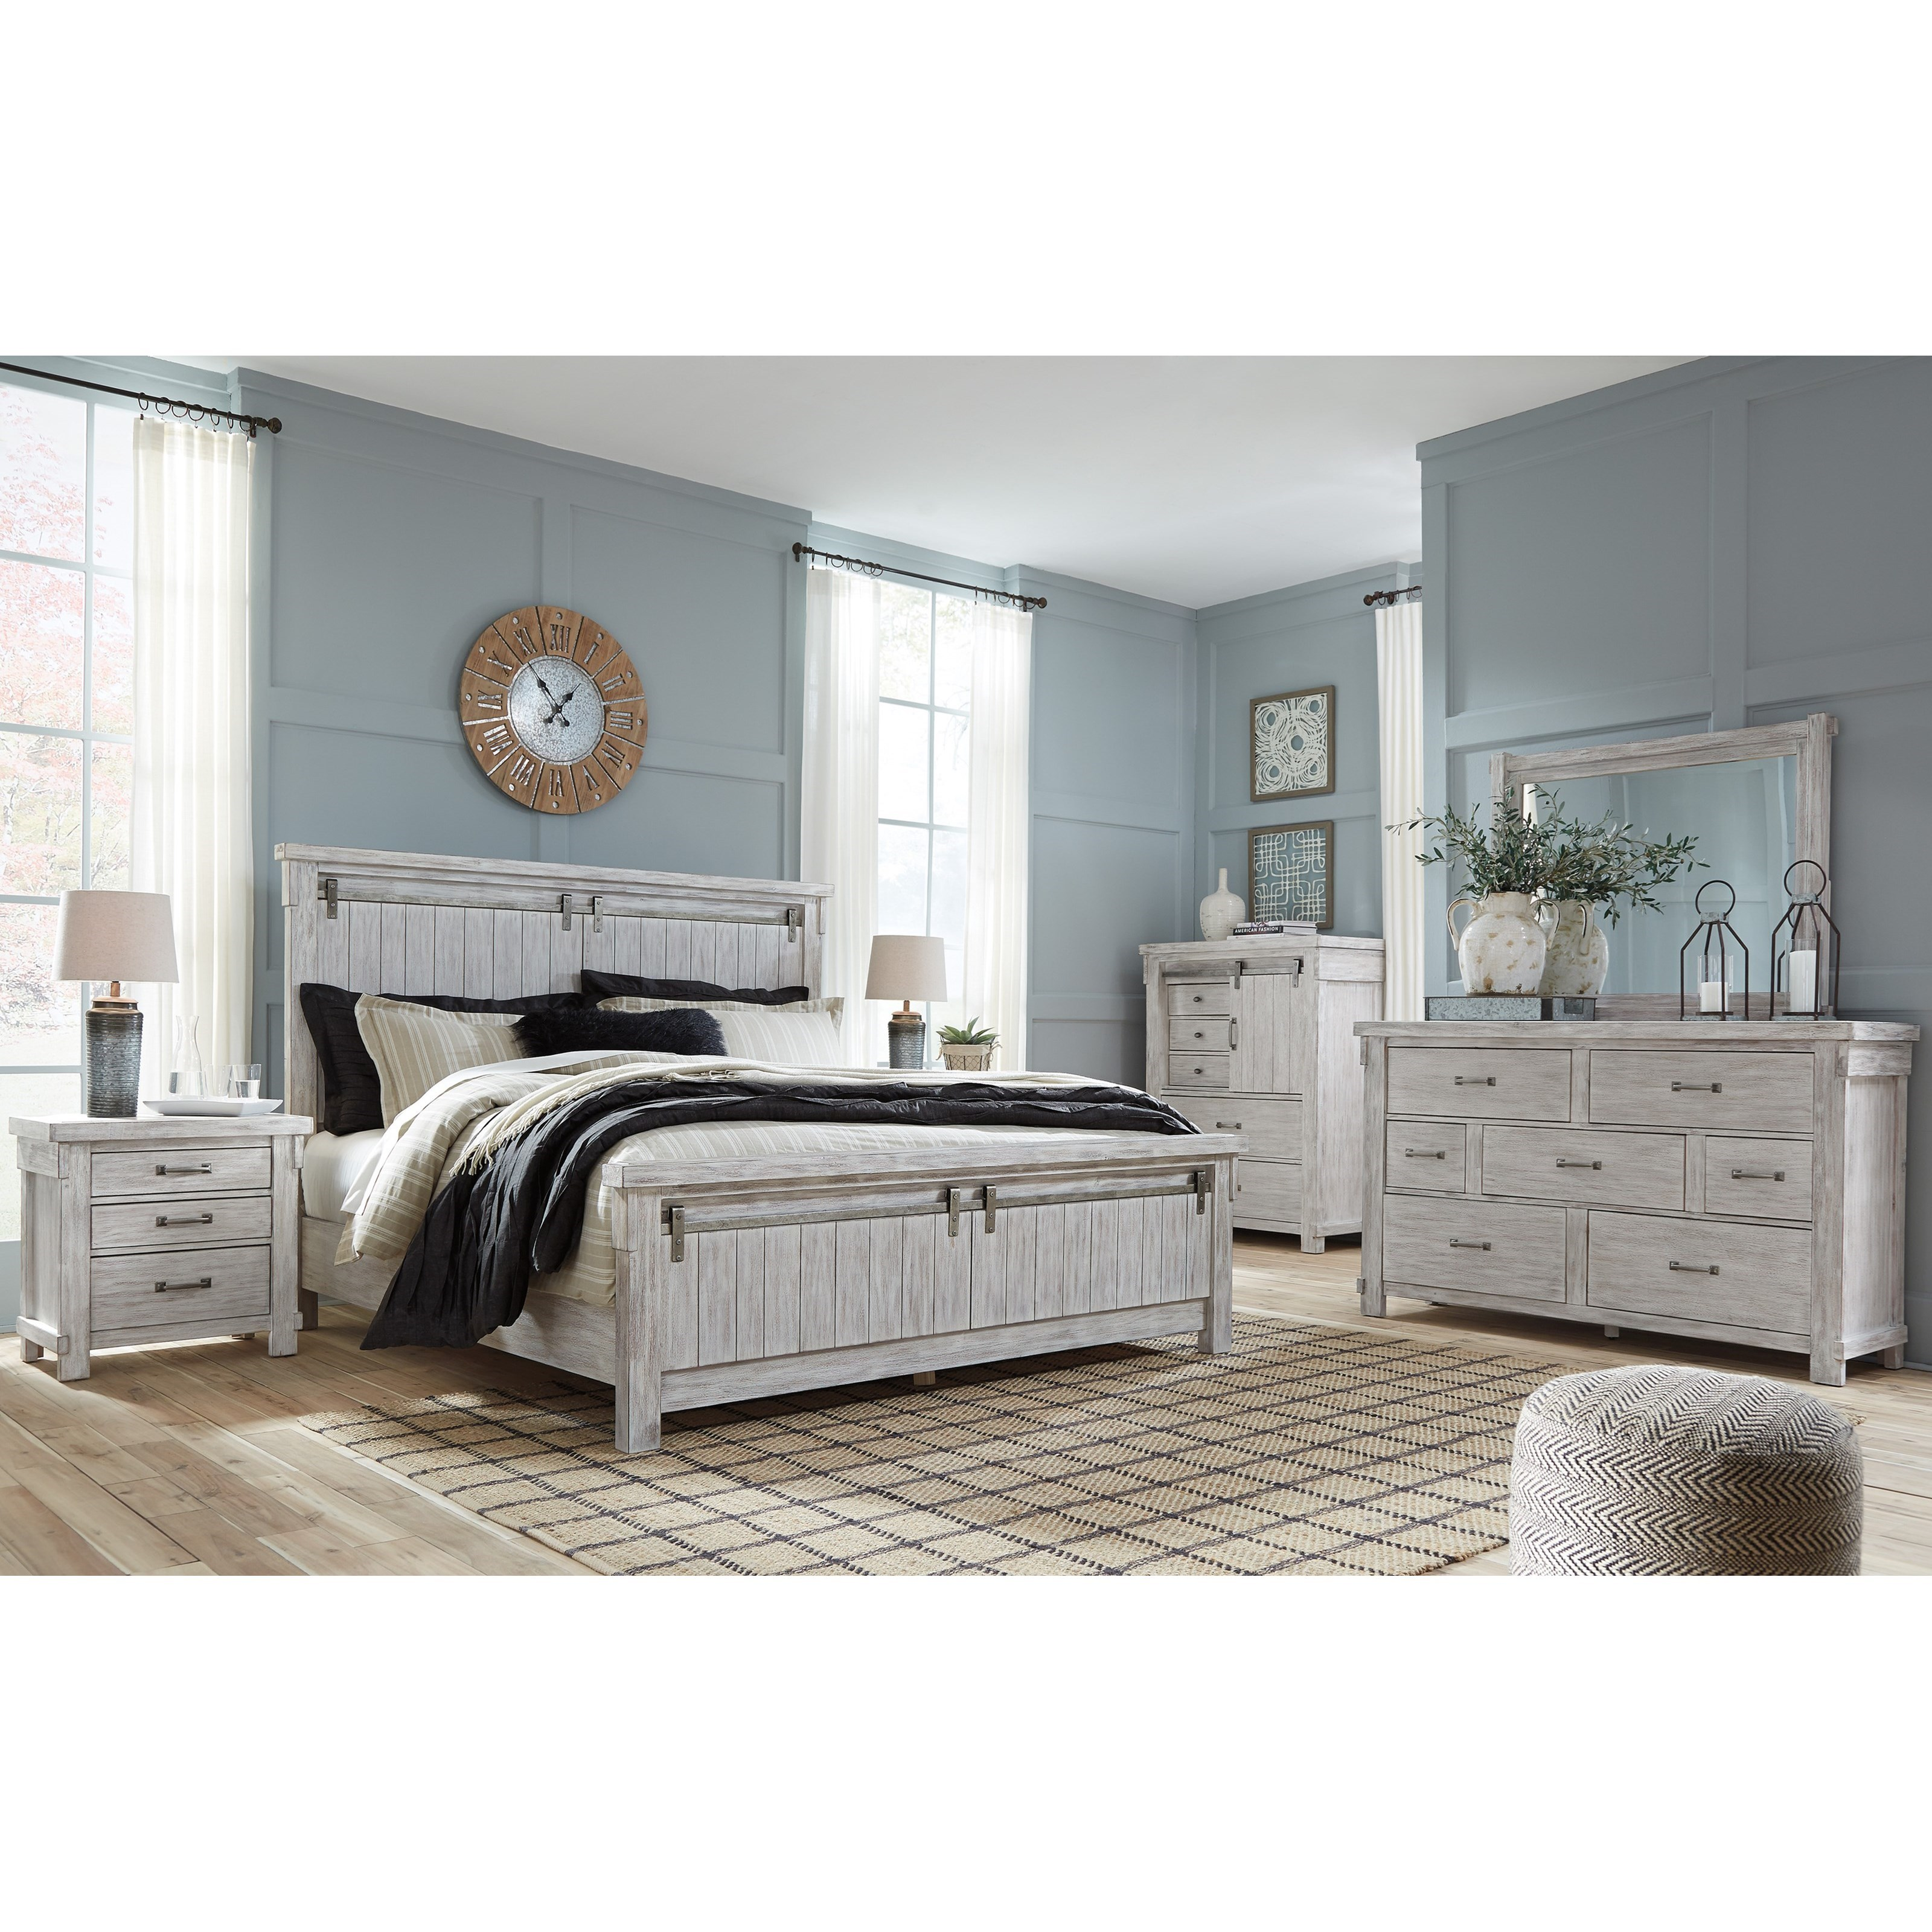 Brashland California King Bedroom Group by Ashley (Signature Design) at Johnny Janosik